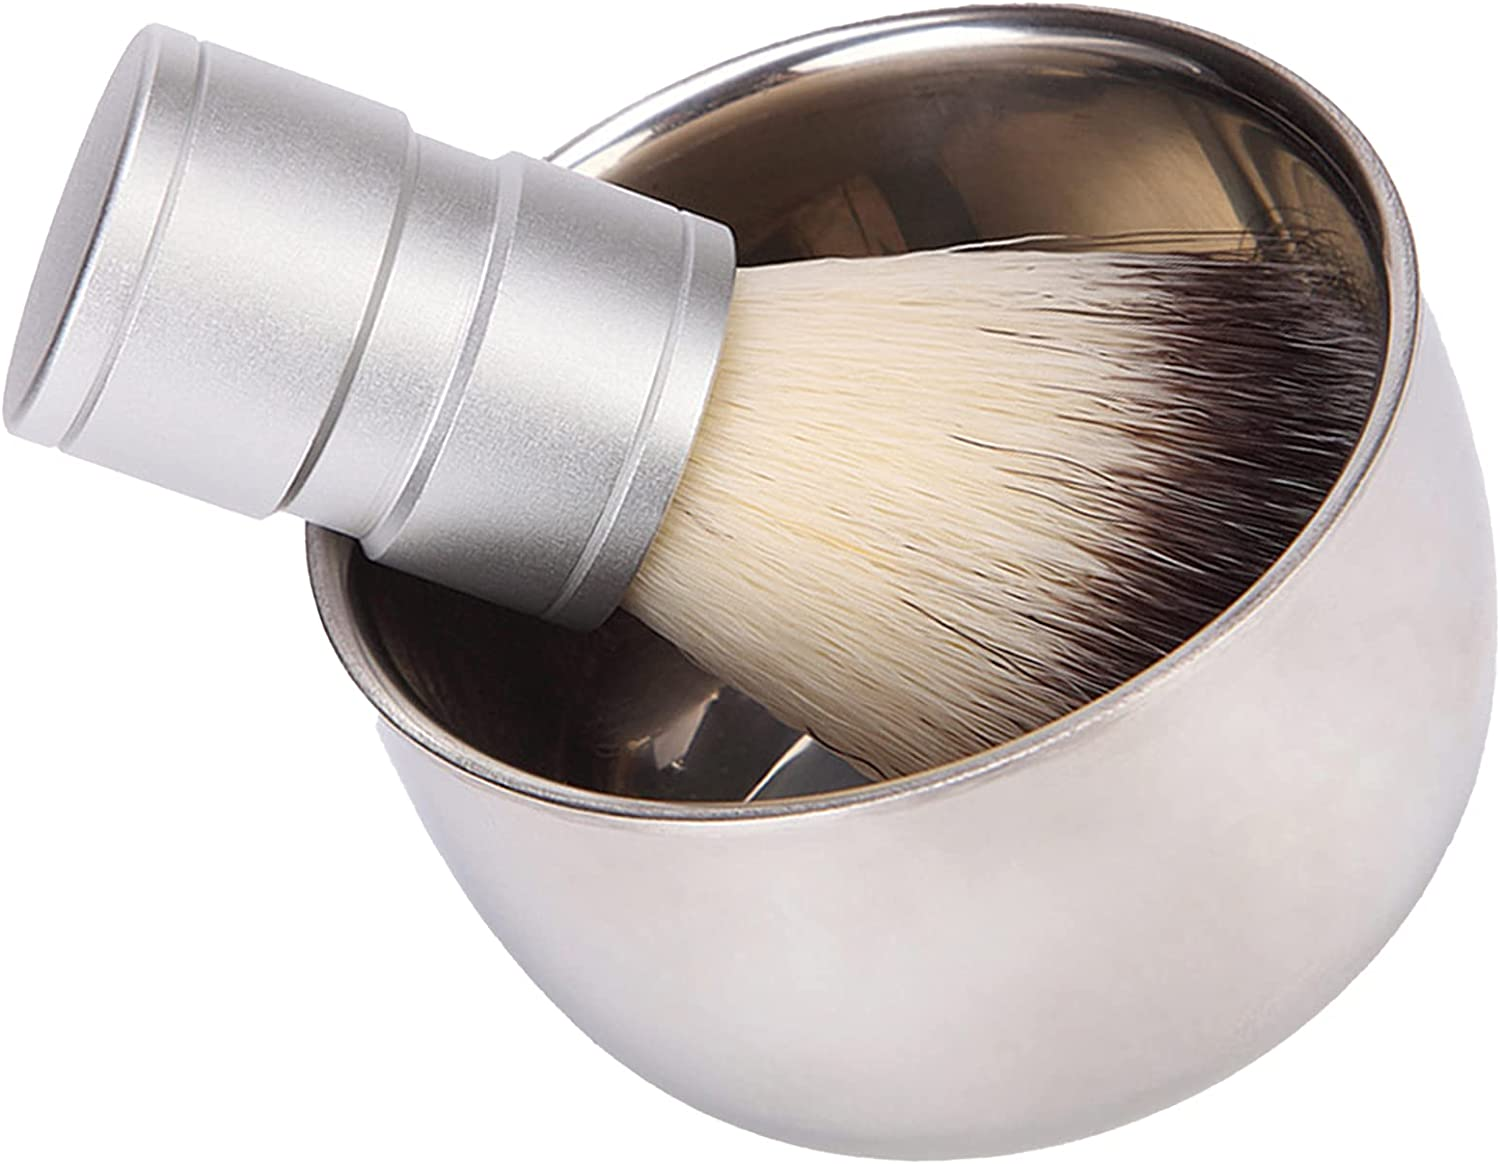 Raleigh Mall Leyeet Stainless Steel Shaving Soap Bowl Direct stock discount Mens Set in 2 1